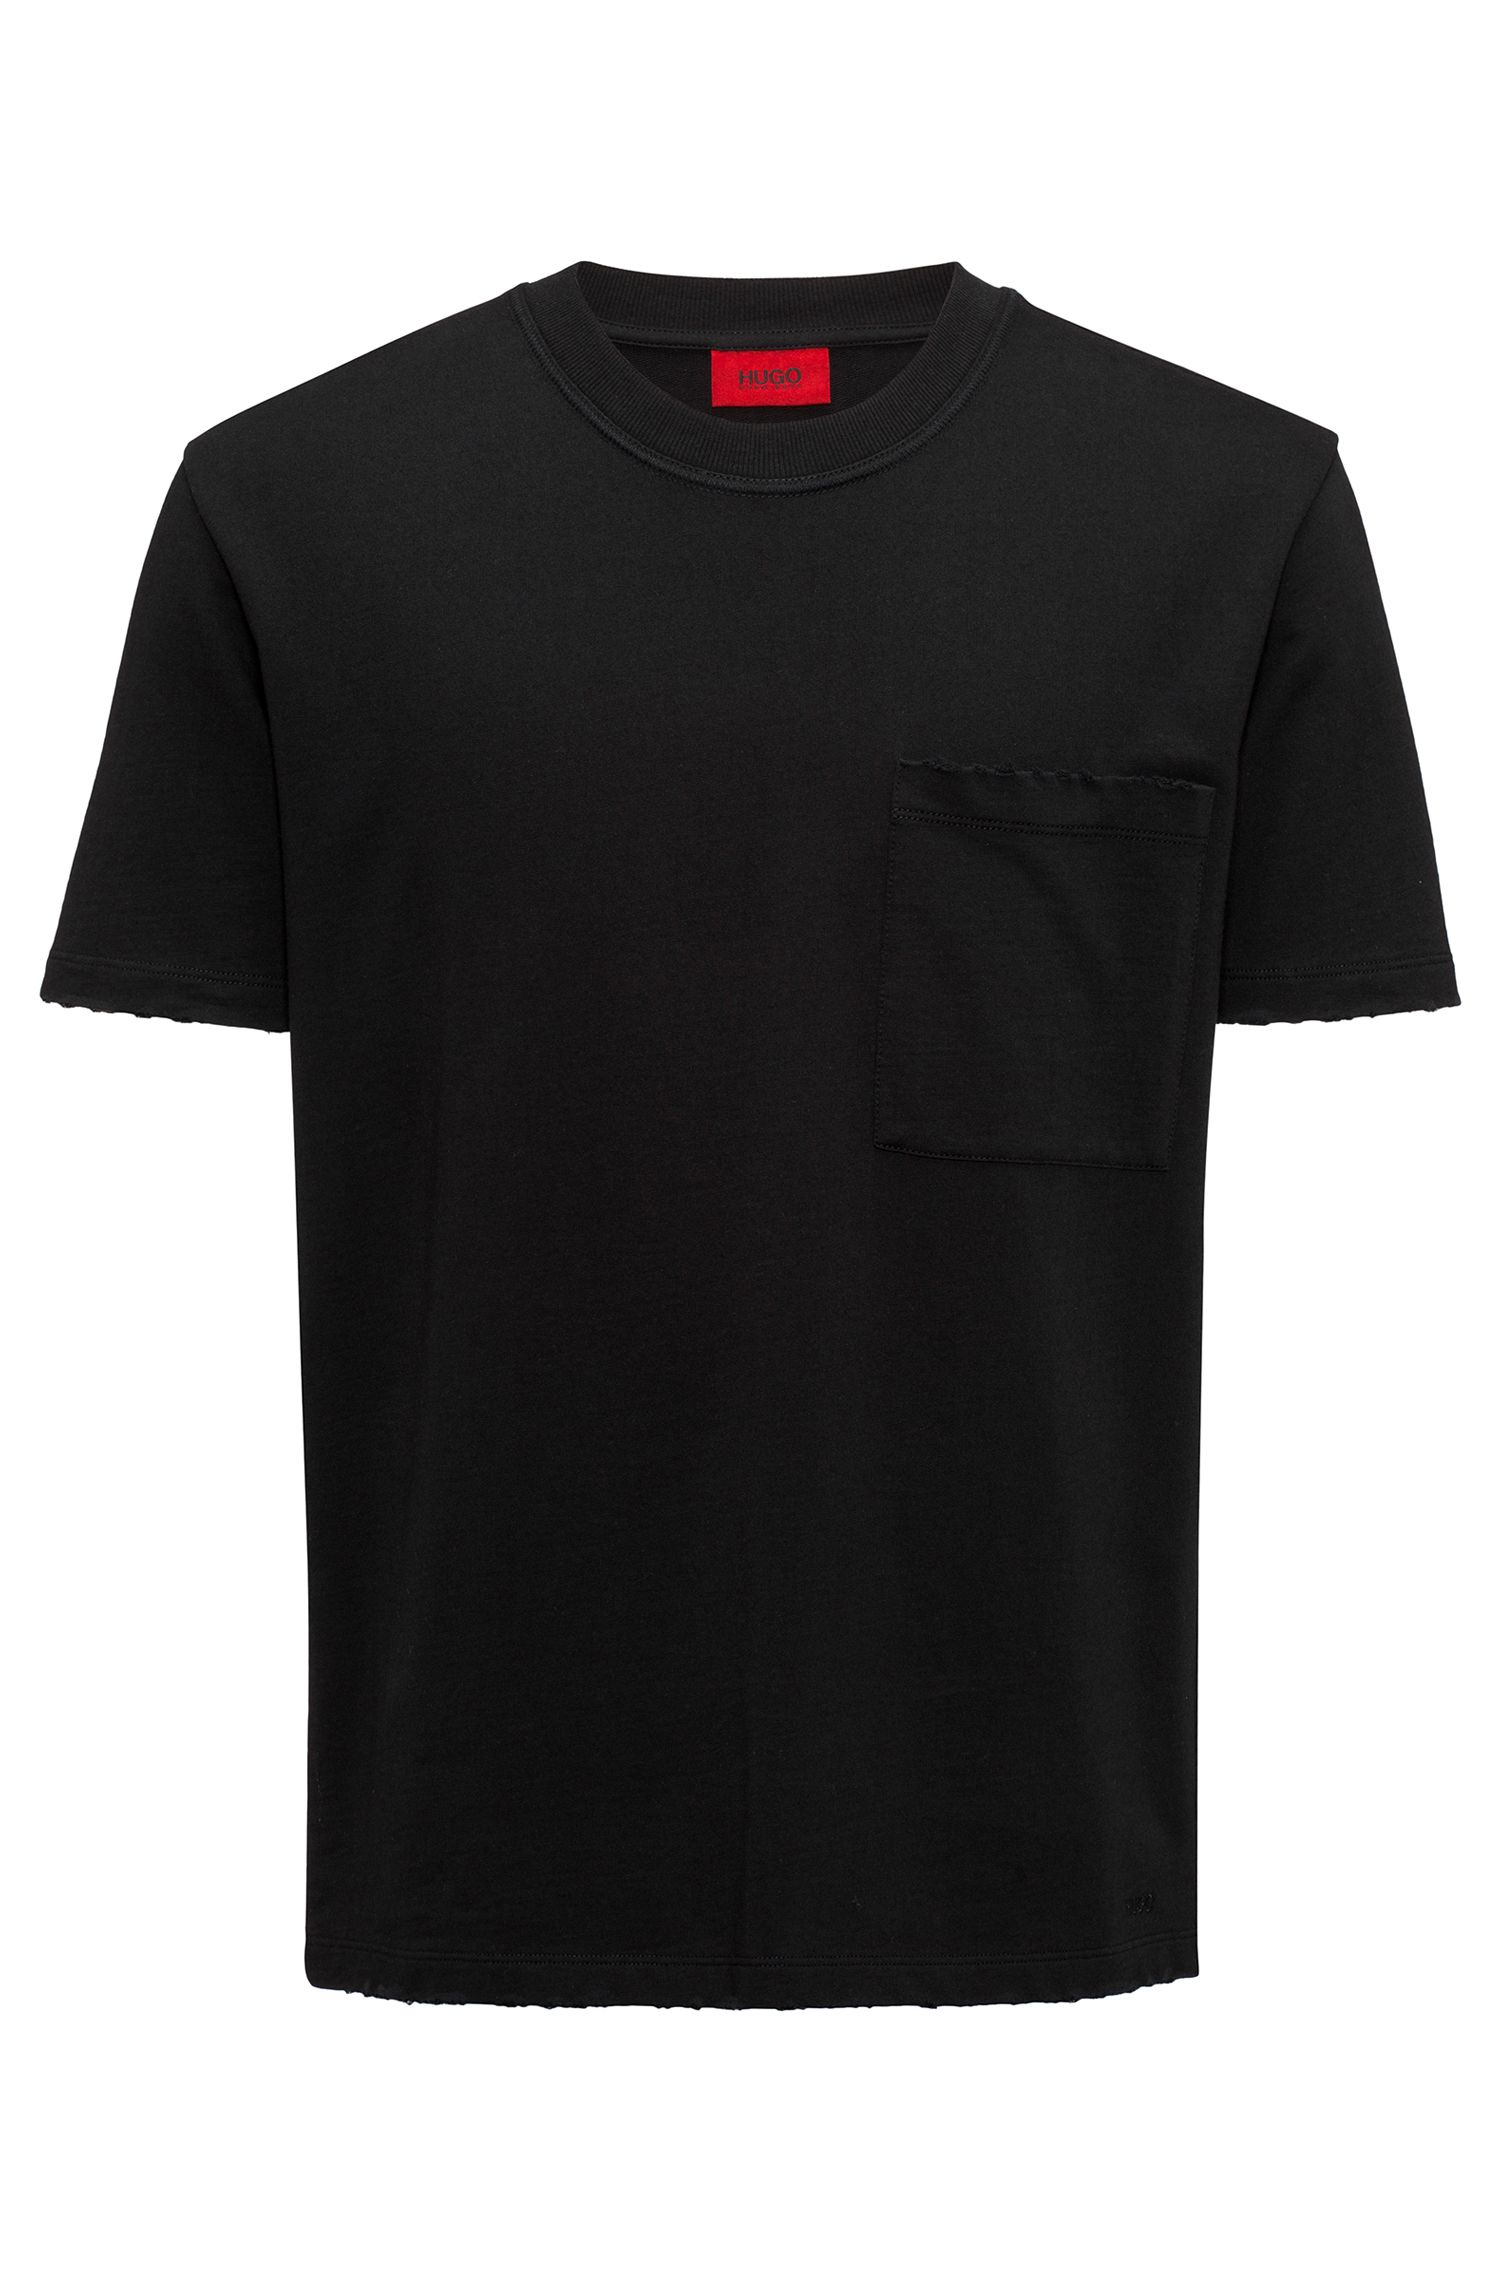 Destroyed Cotton T-Shirt | Drizz